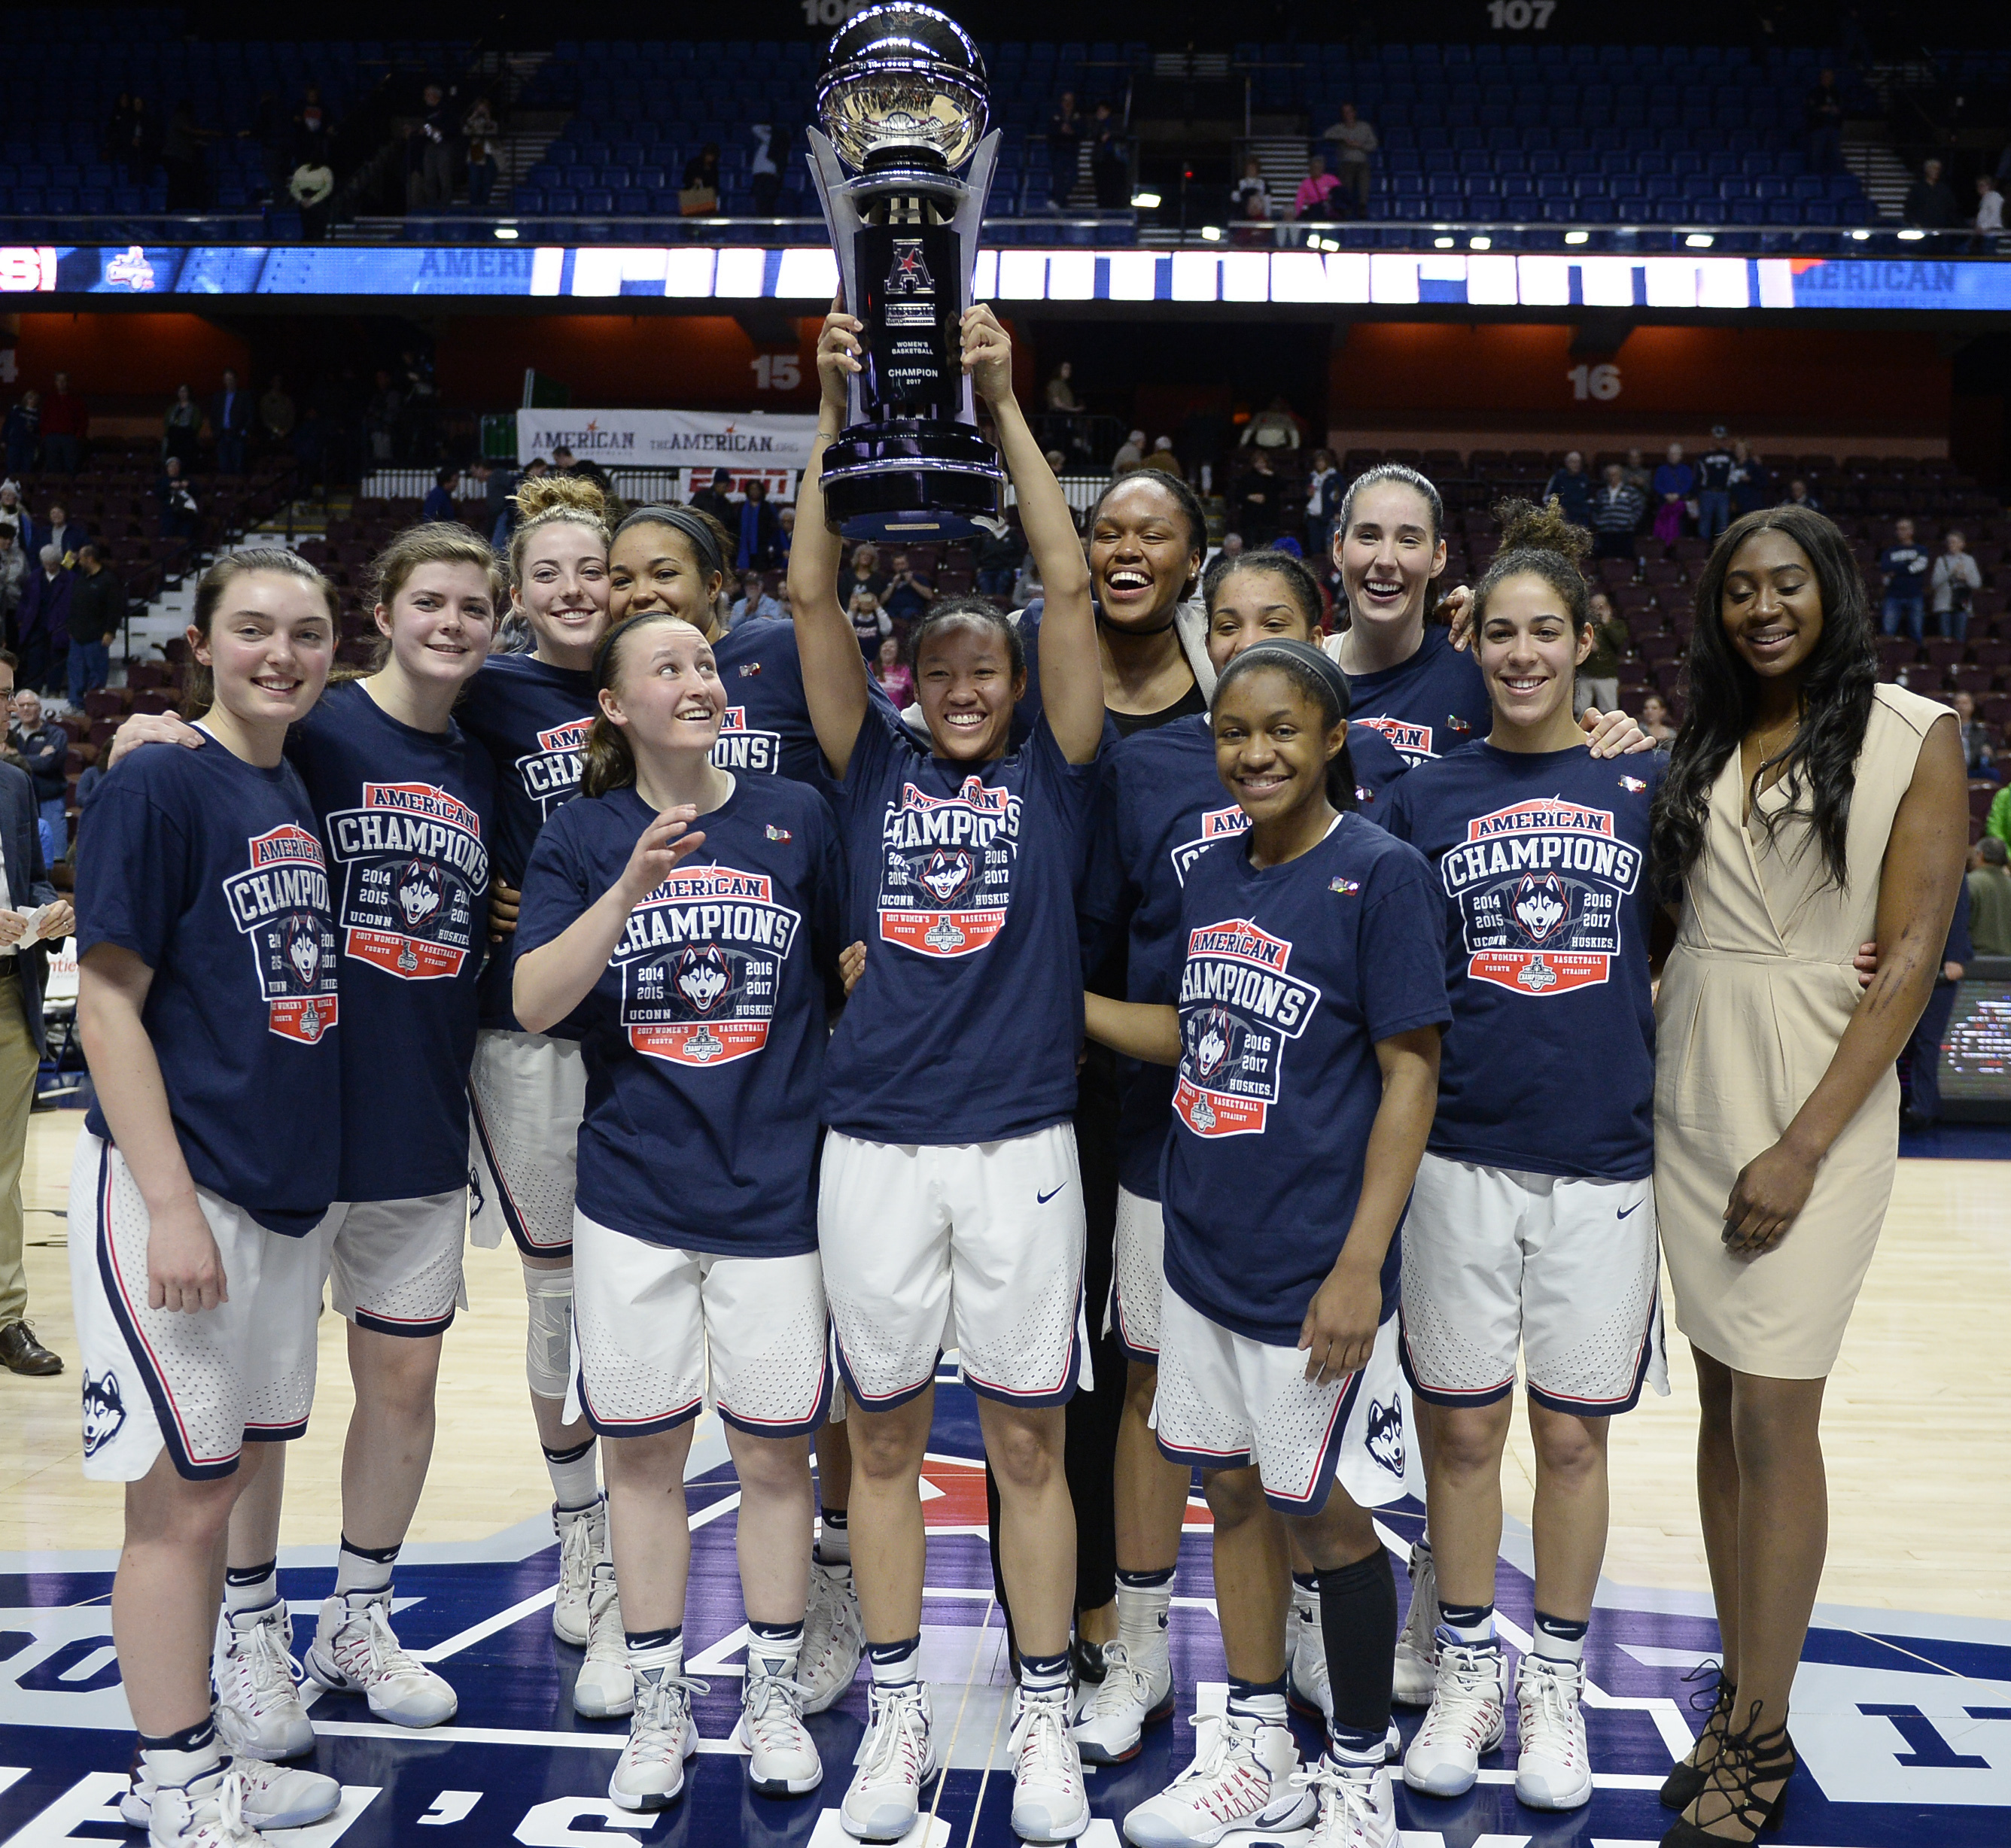 FILE - In this March 6, 2017, file photo, the Connecticut women's basketball team pose with the American Athletic Conference championship trophy after defeating South Florida in an NCAA college basketball game tournament final in Uncasville, Conn.  UConn